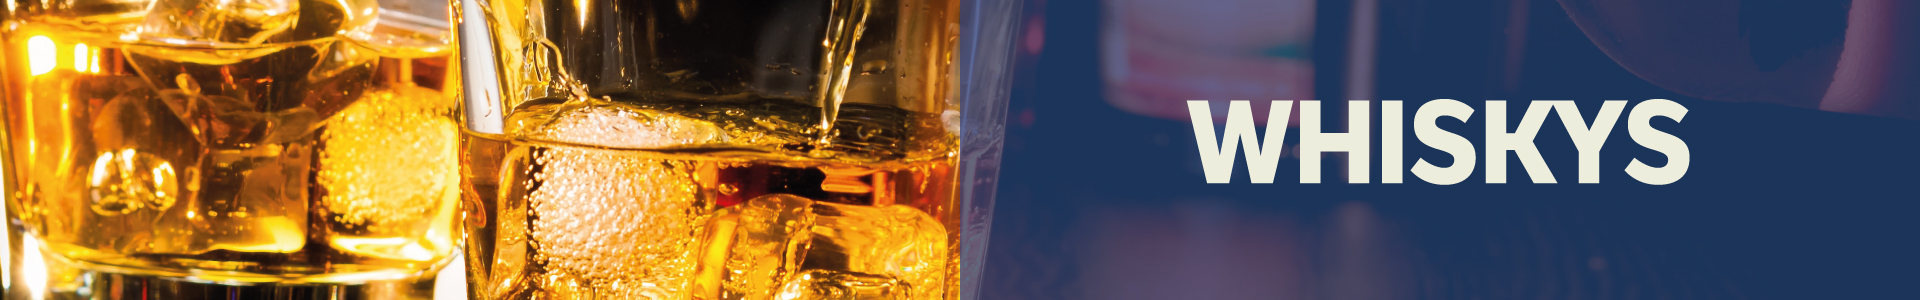 Banner Whiskys 1